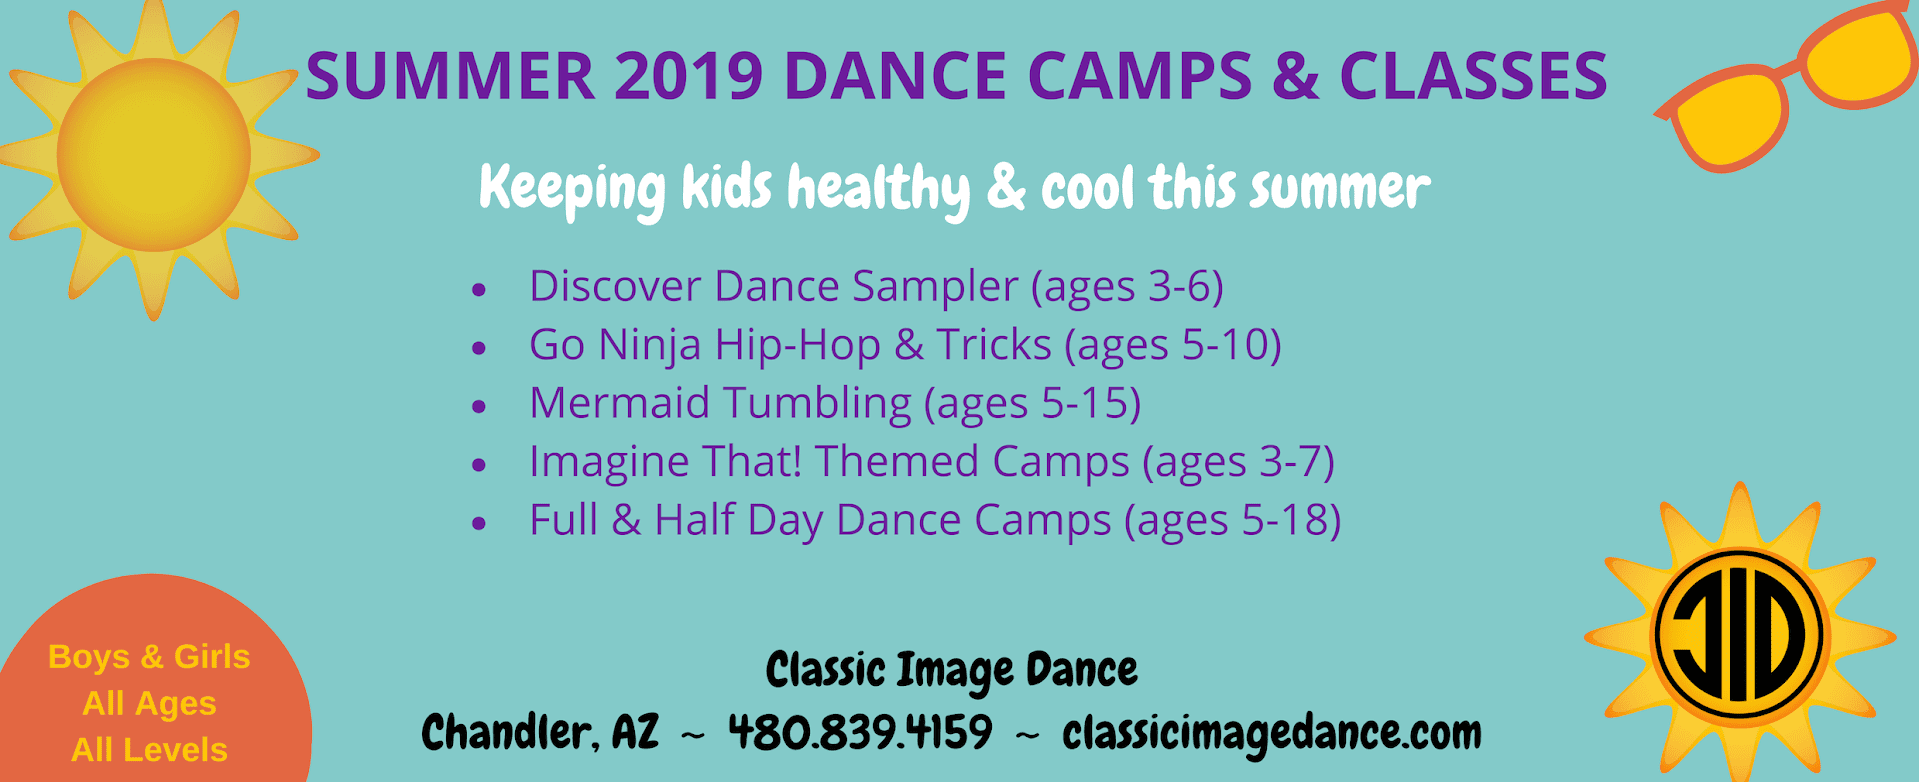 Summer camps and classes slide